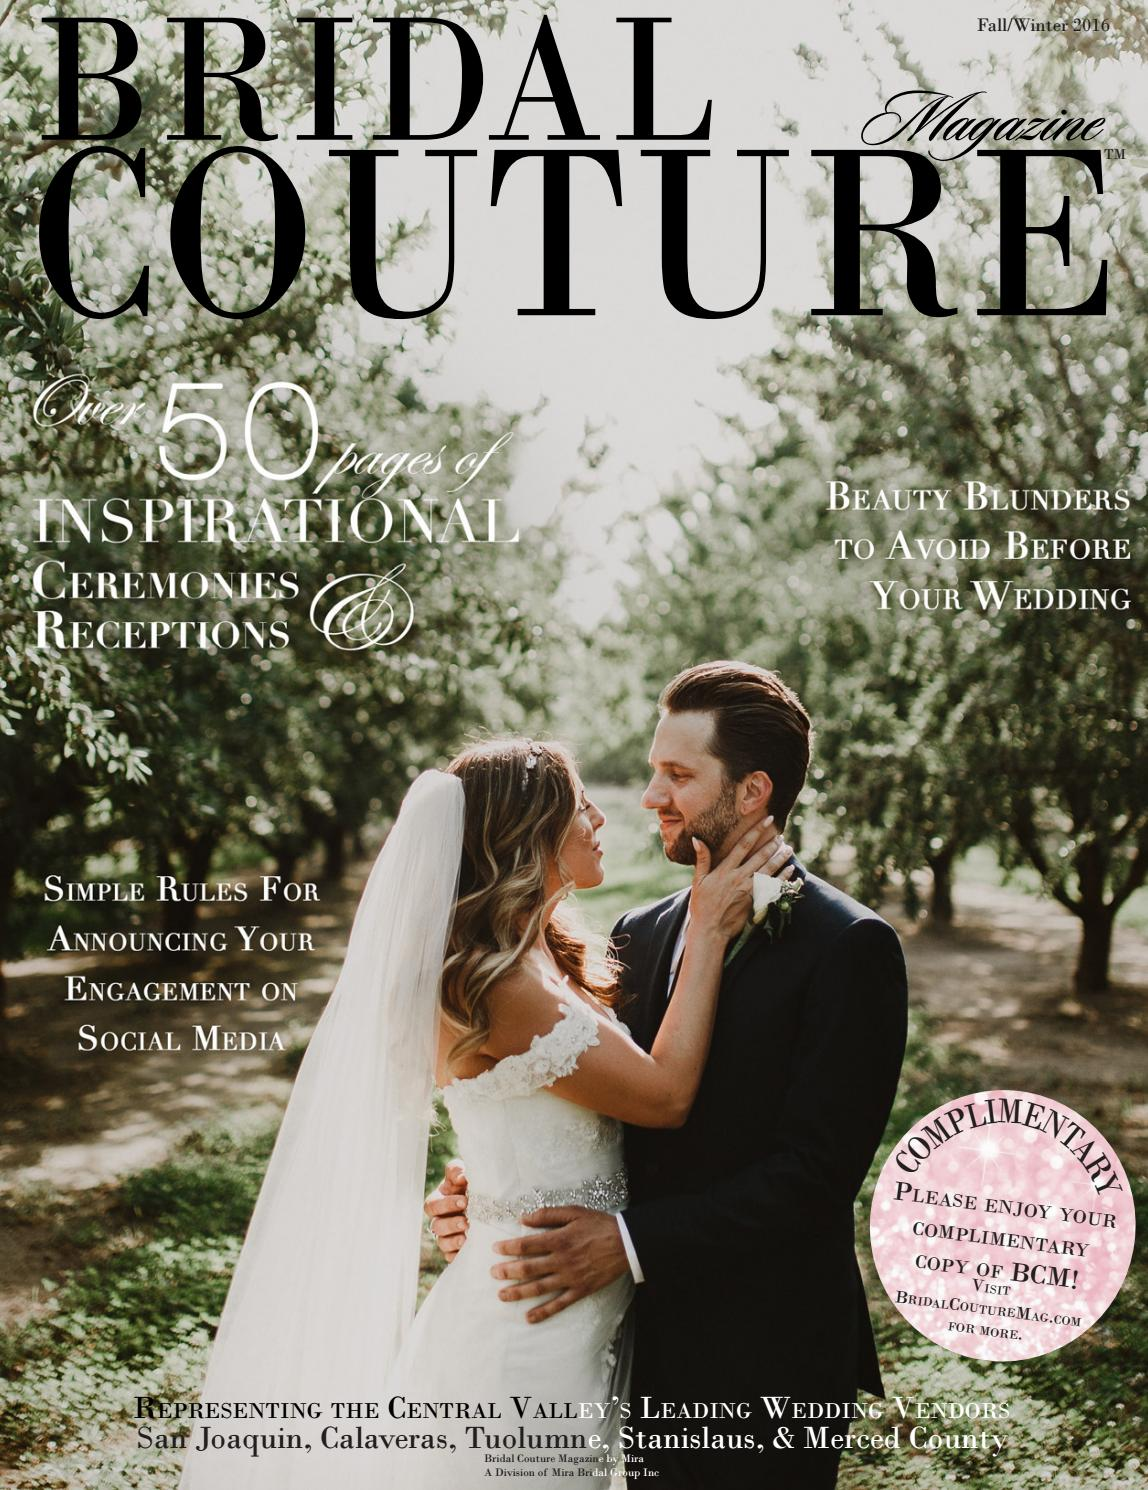 Bridal Couture Magazine Fall Winter 2016 By Bridal Couture